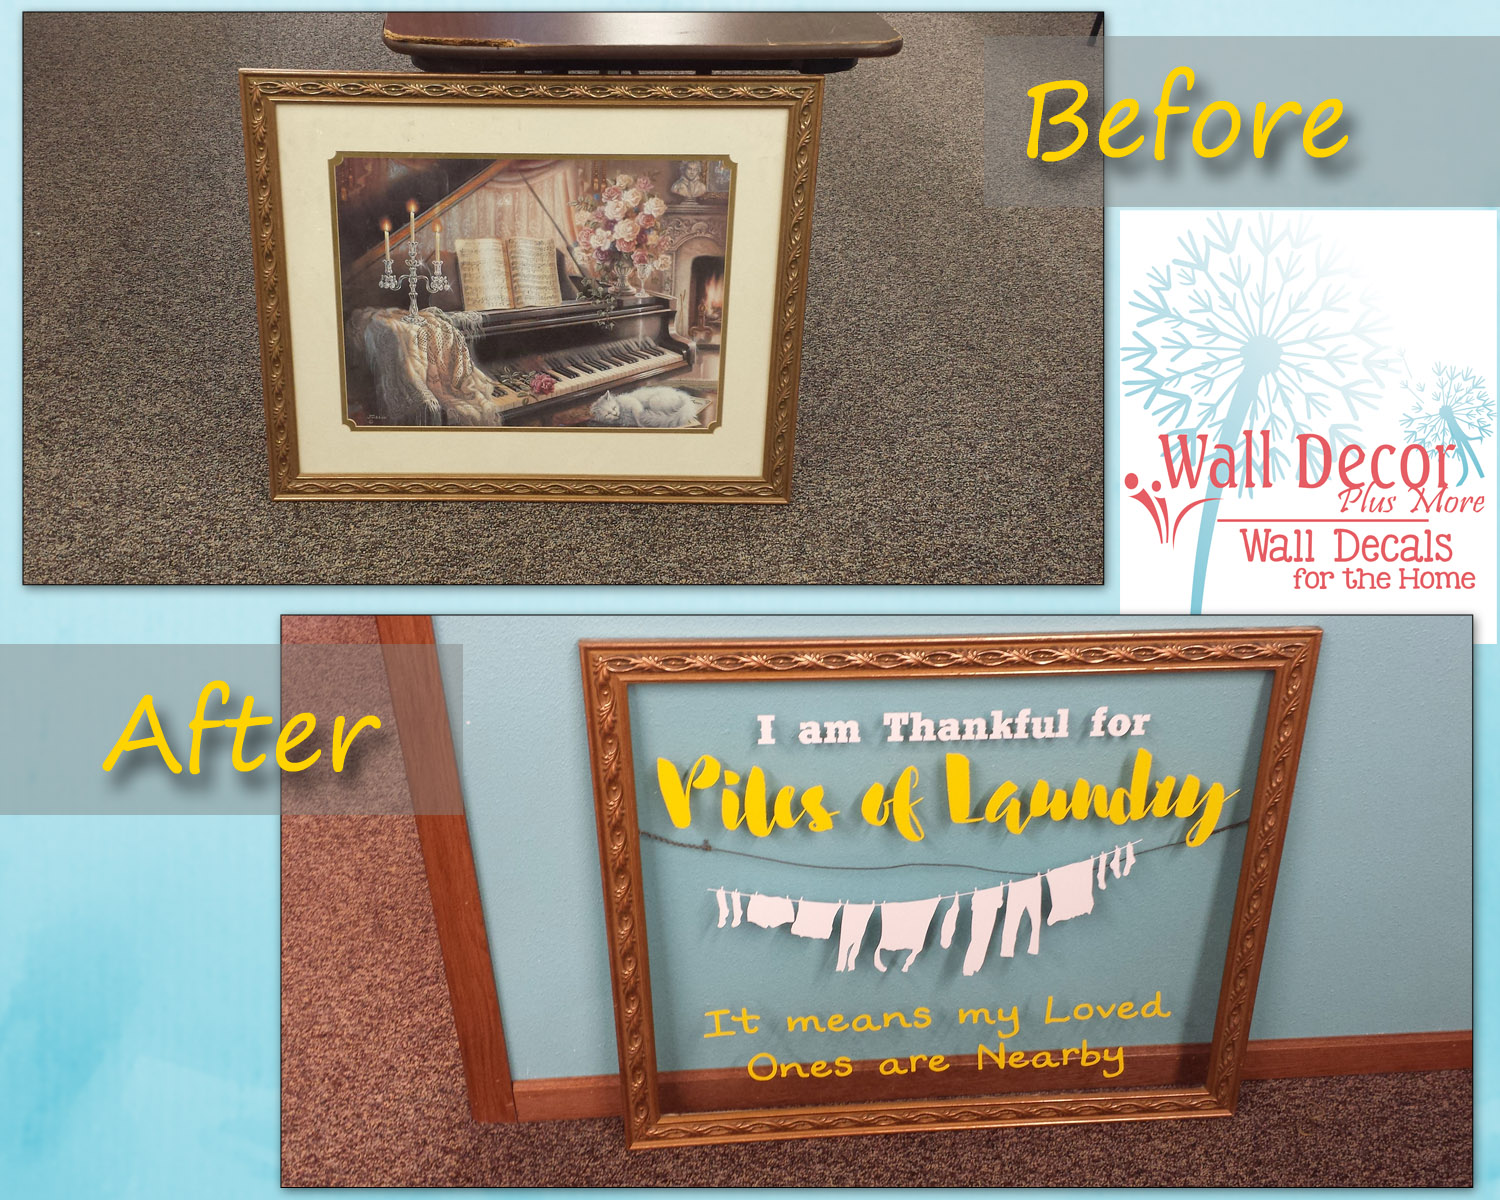 Why I Just Canu0027t Win With My Laundry Room Wall Decor!